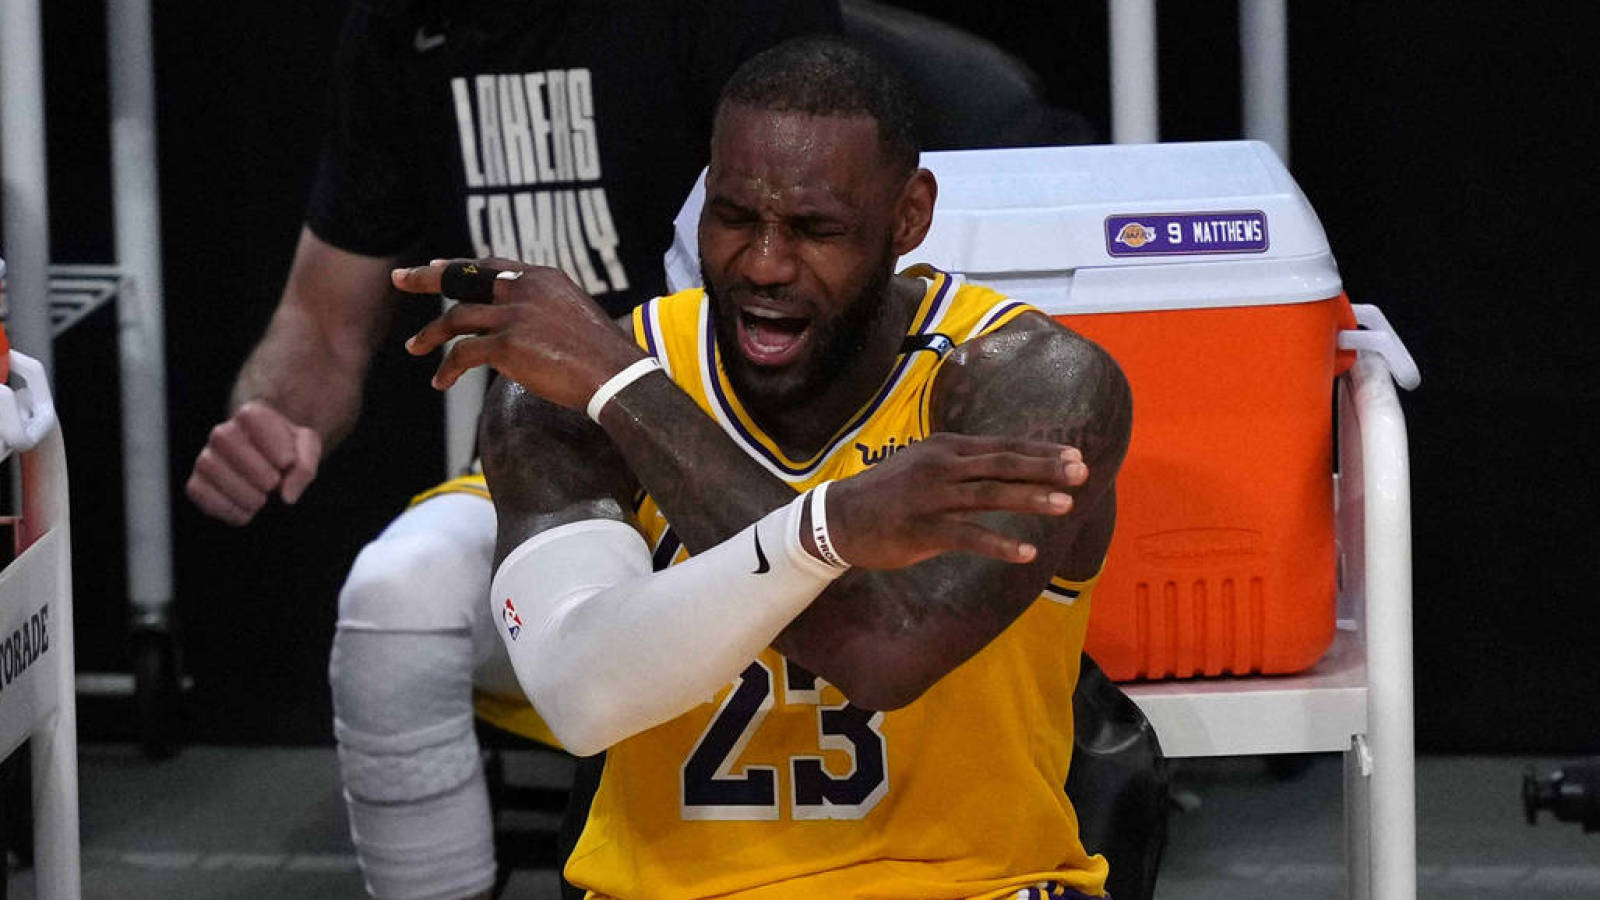 LeBron sounds bad in the NBA for lack of rest at the beginning of the season